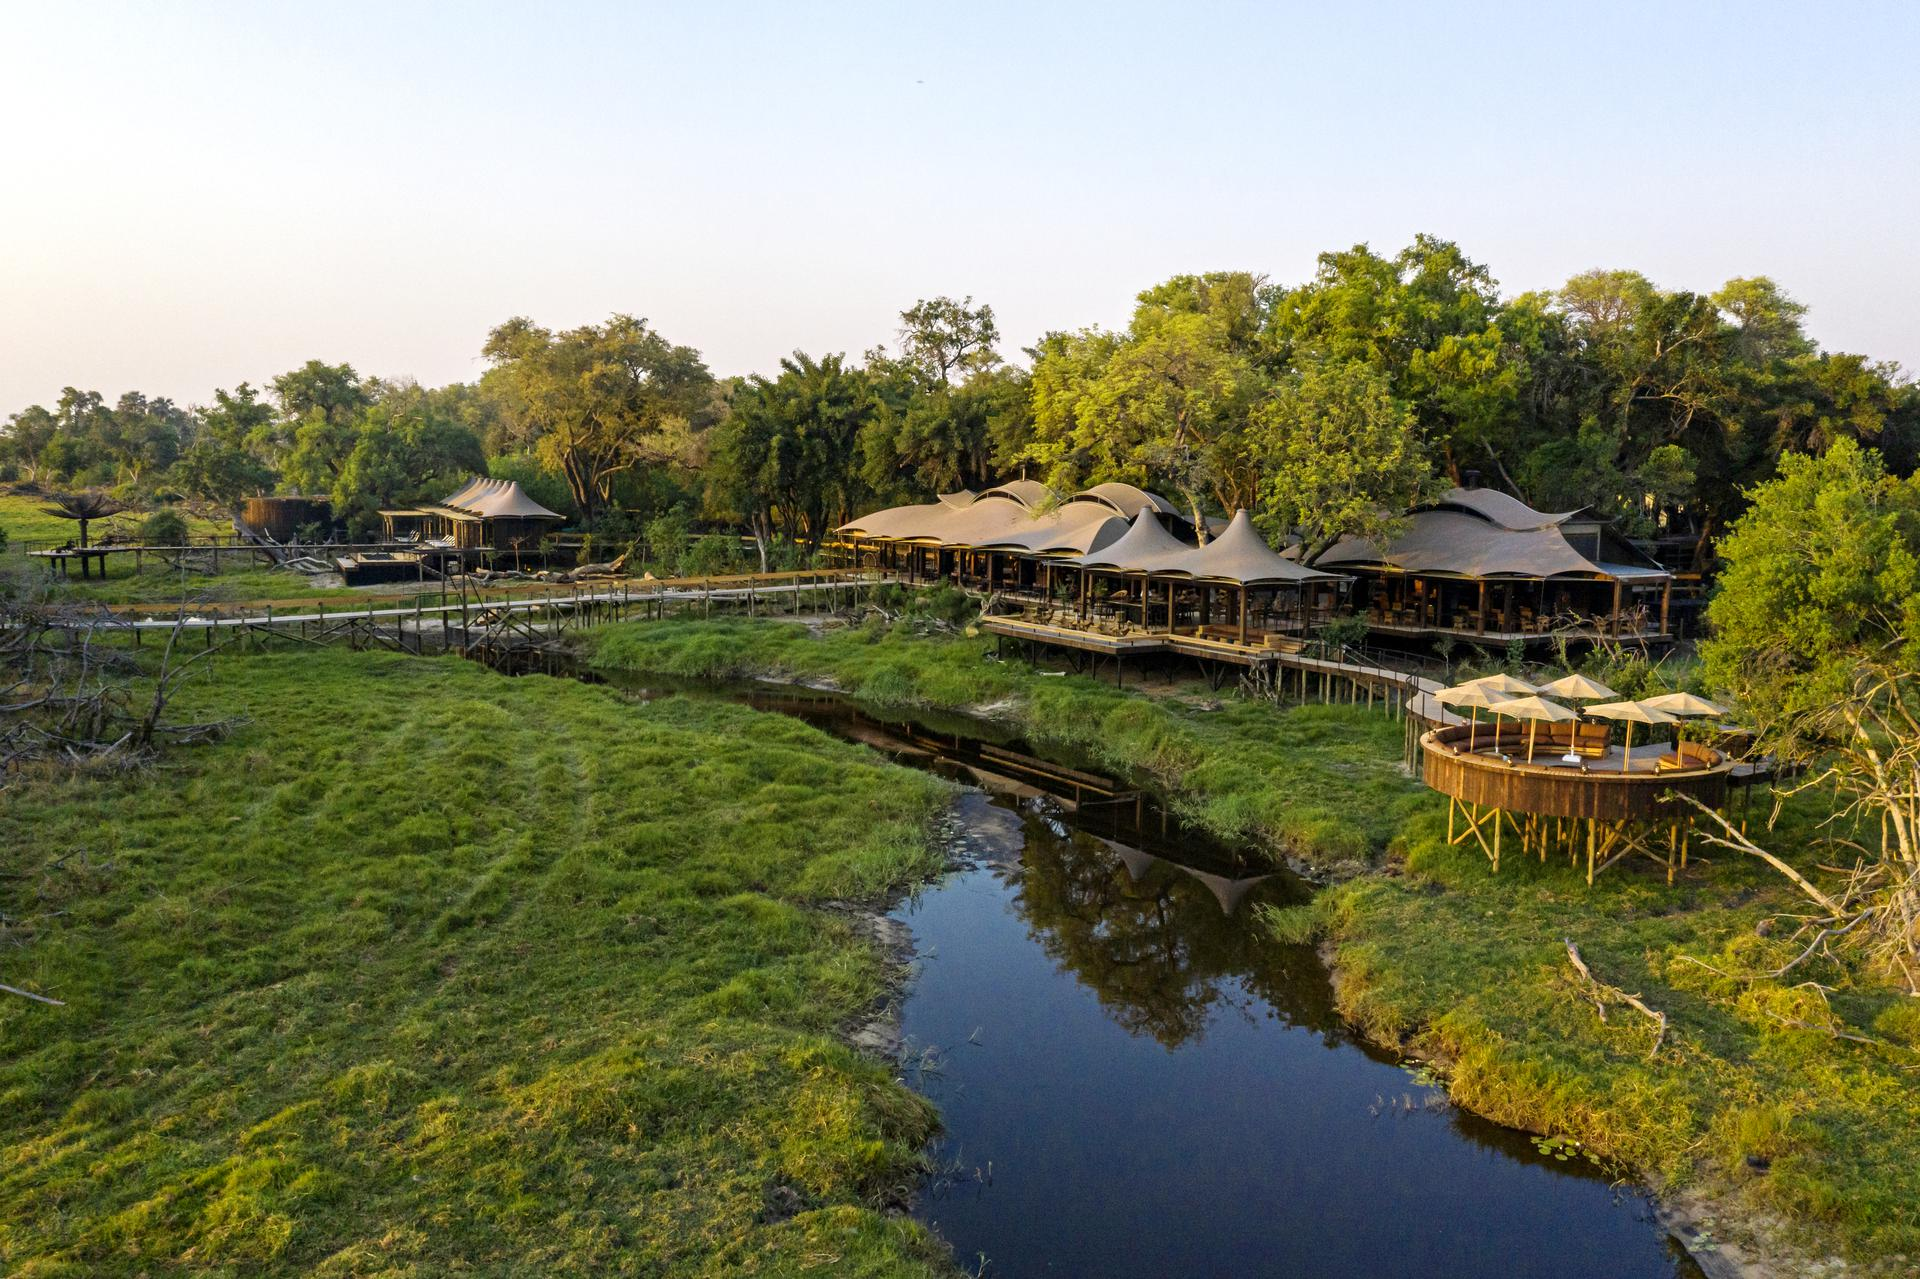 40% off a 3 night Victoria Falls experience | Visit an elephant sanctuary and orphanage | #maketravelmatter - Xigera Safari Lodge is open